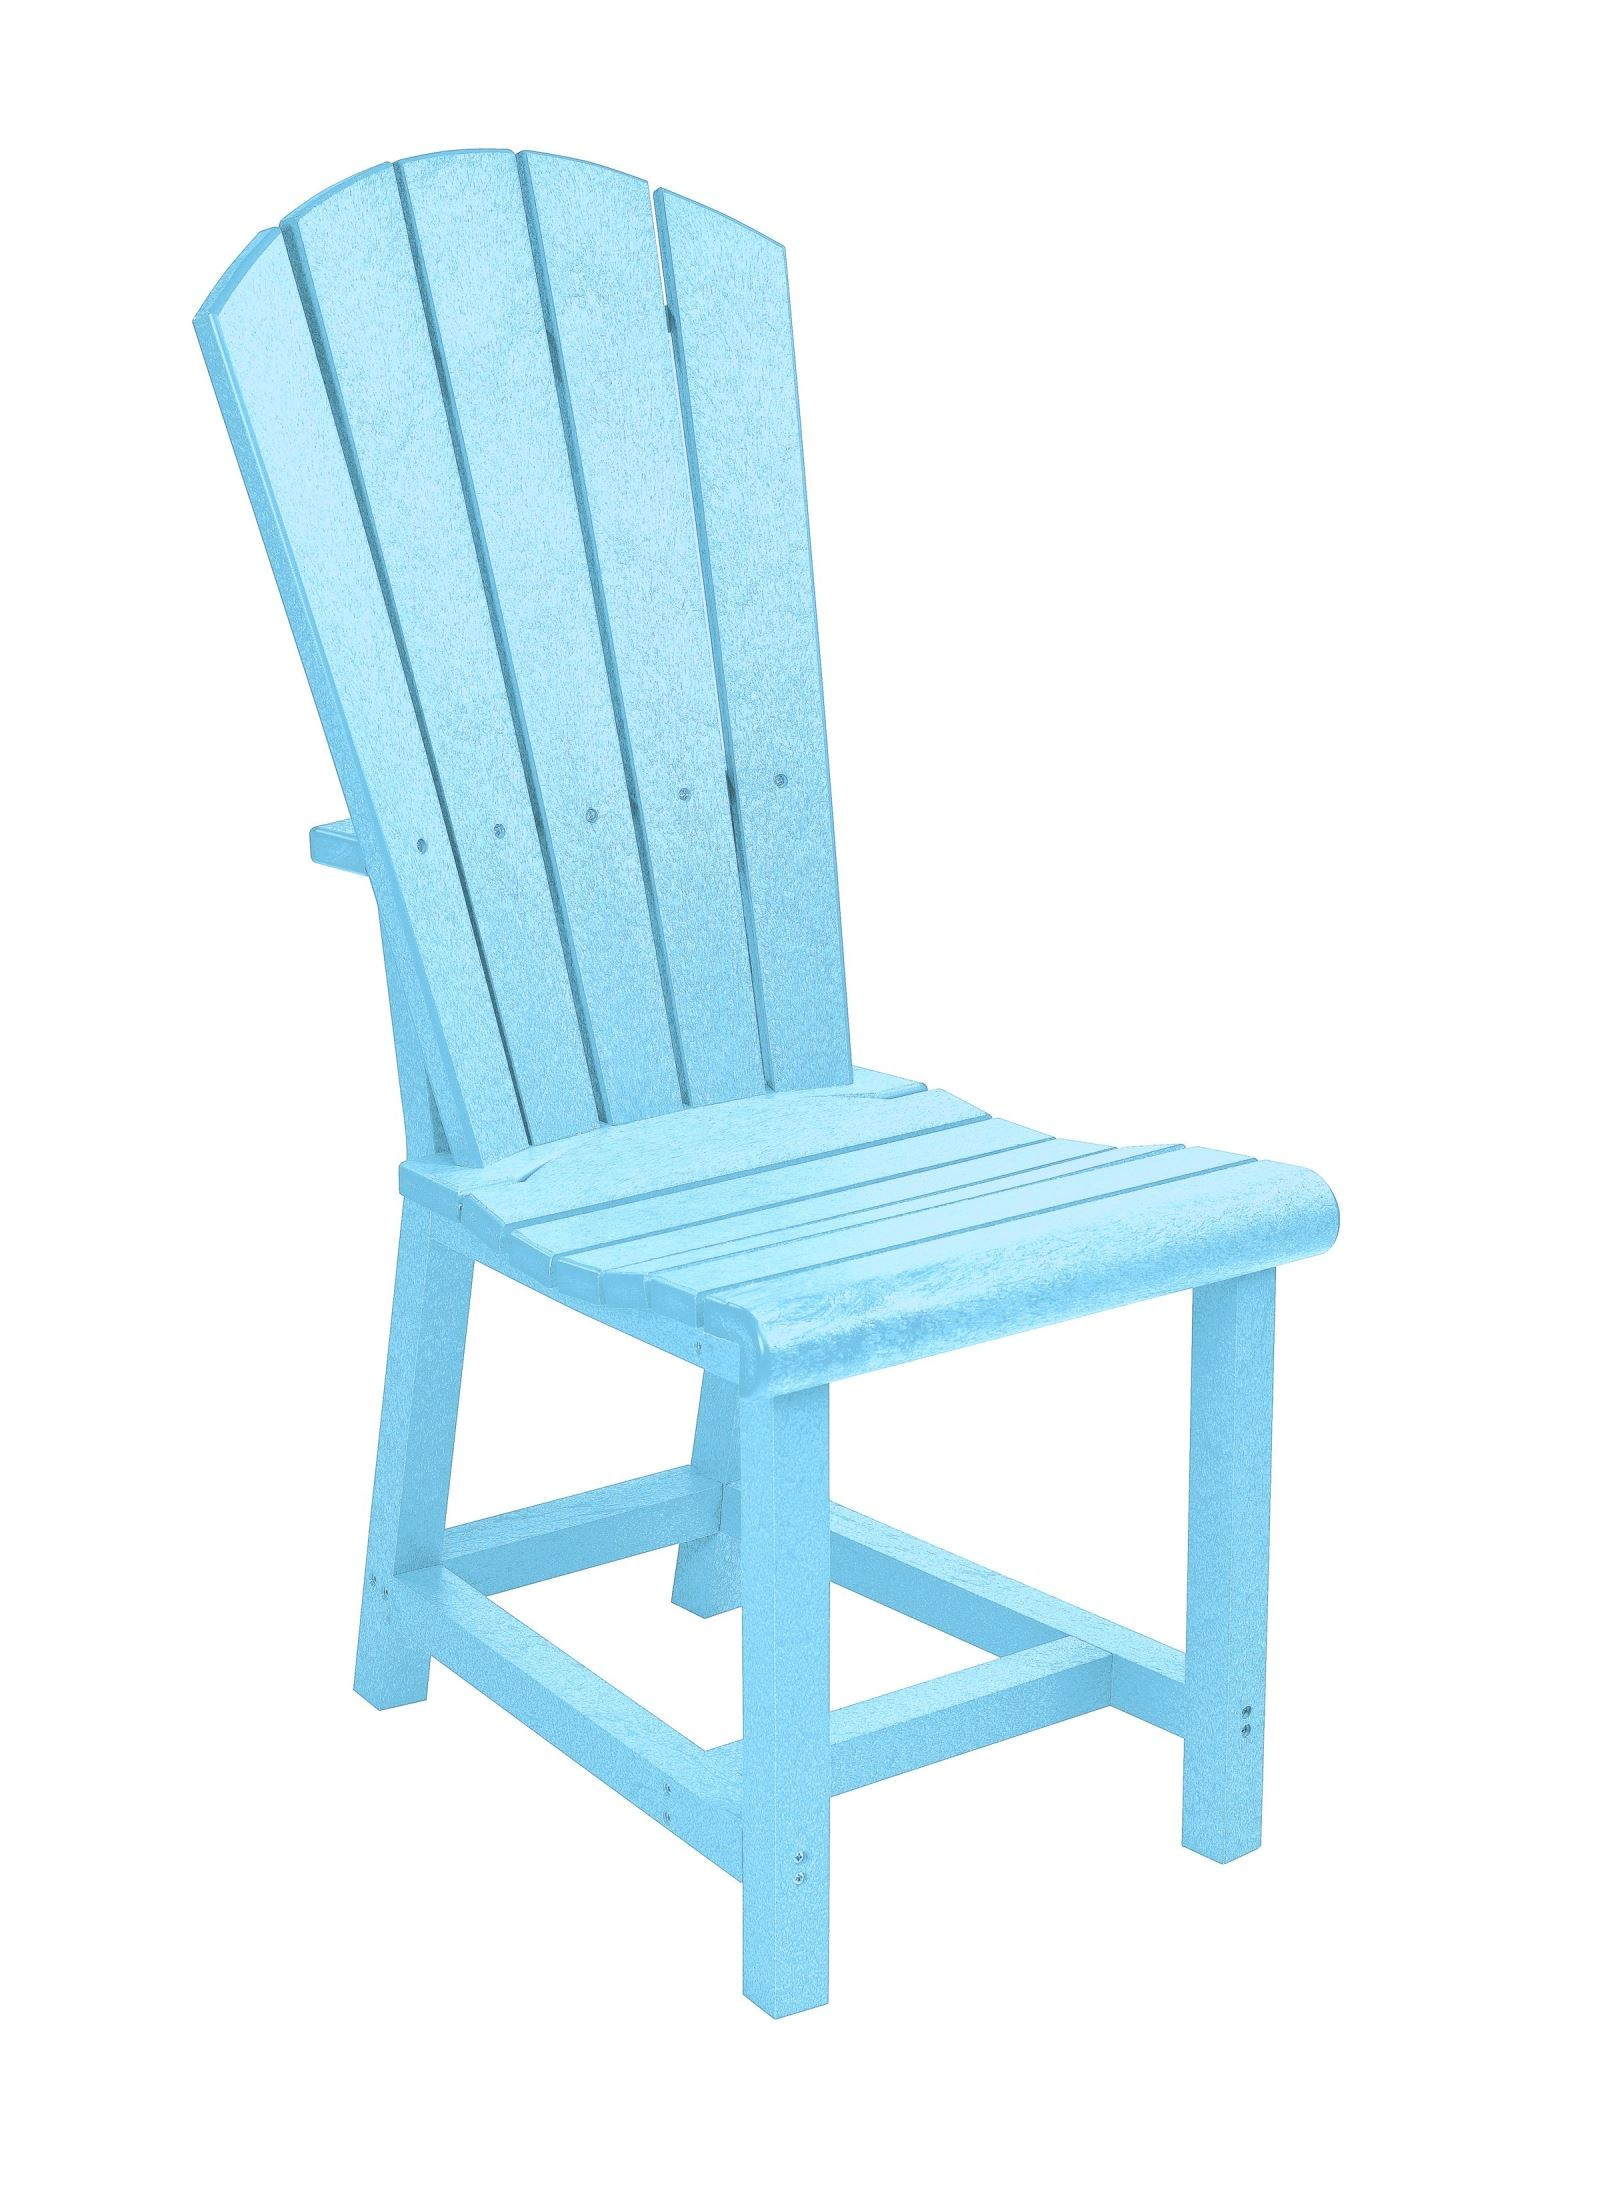 Aqua Dining Chairs Generations Aqua Adirondack Dining Side Chair From Cr